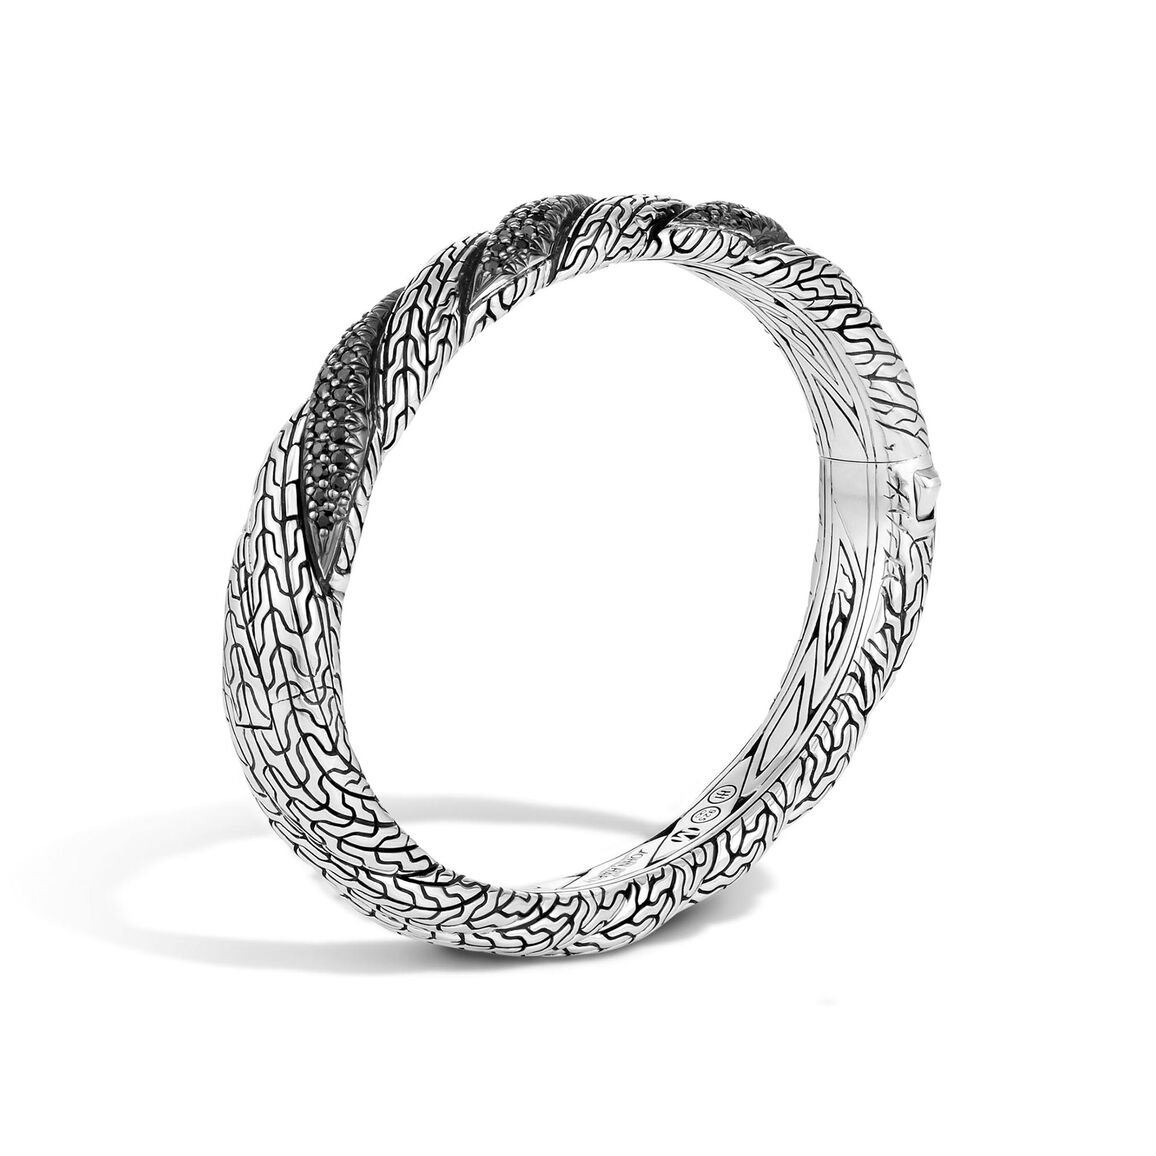 TwistedChain 8.5MM Hinged Bangle in Silver with Gemstone